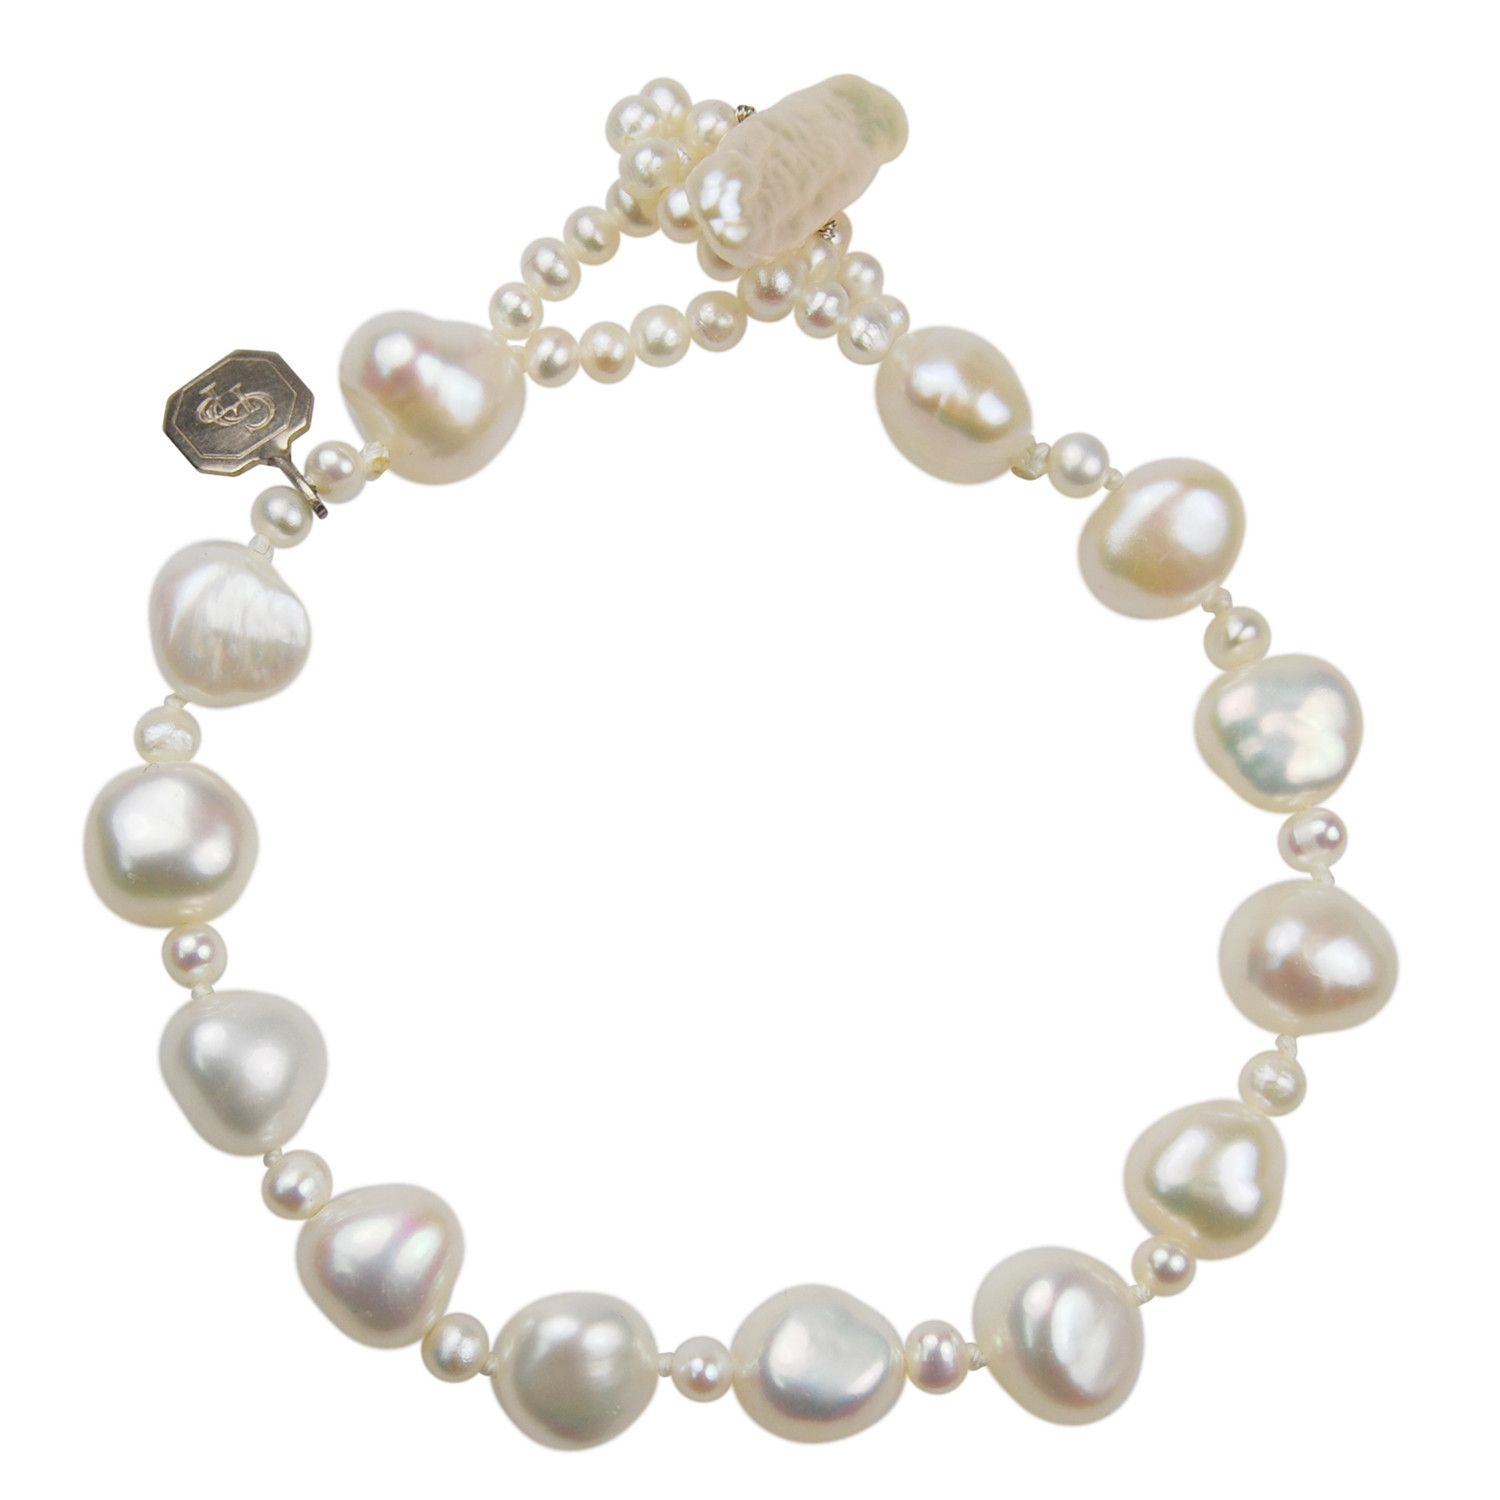 065e36415 An elegant single strand bracelet made with white cultured biwa freshwater  pearls and cultured seed pearl spacers. Order online or at our  Knightsbridge, ...